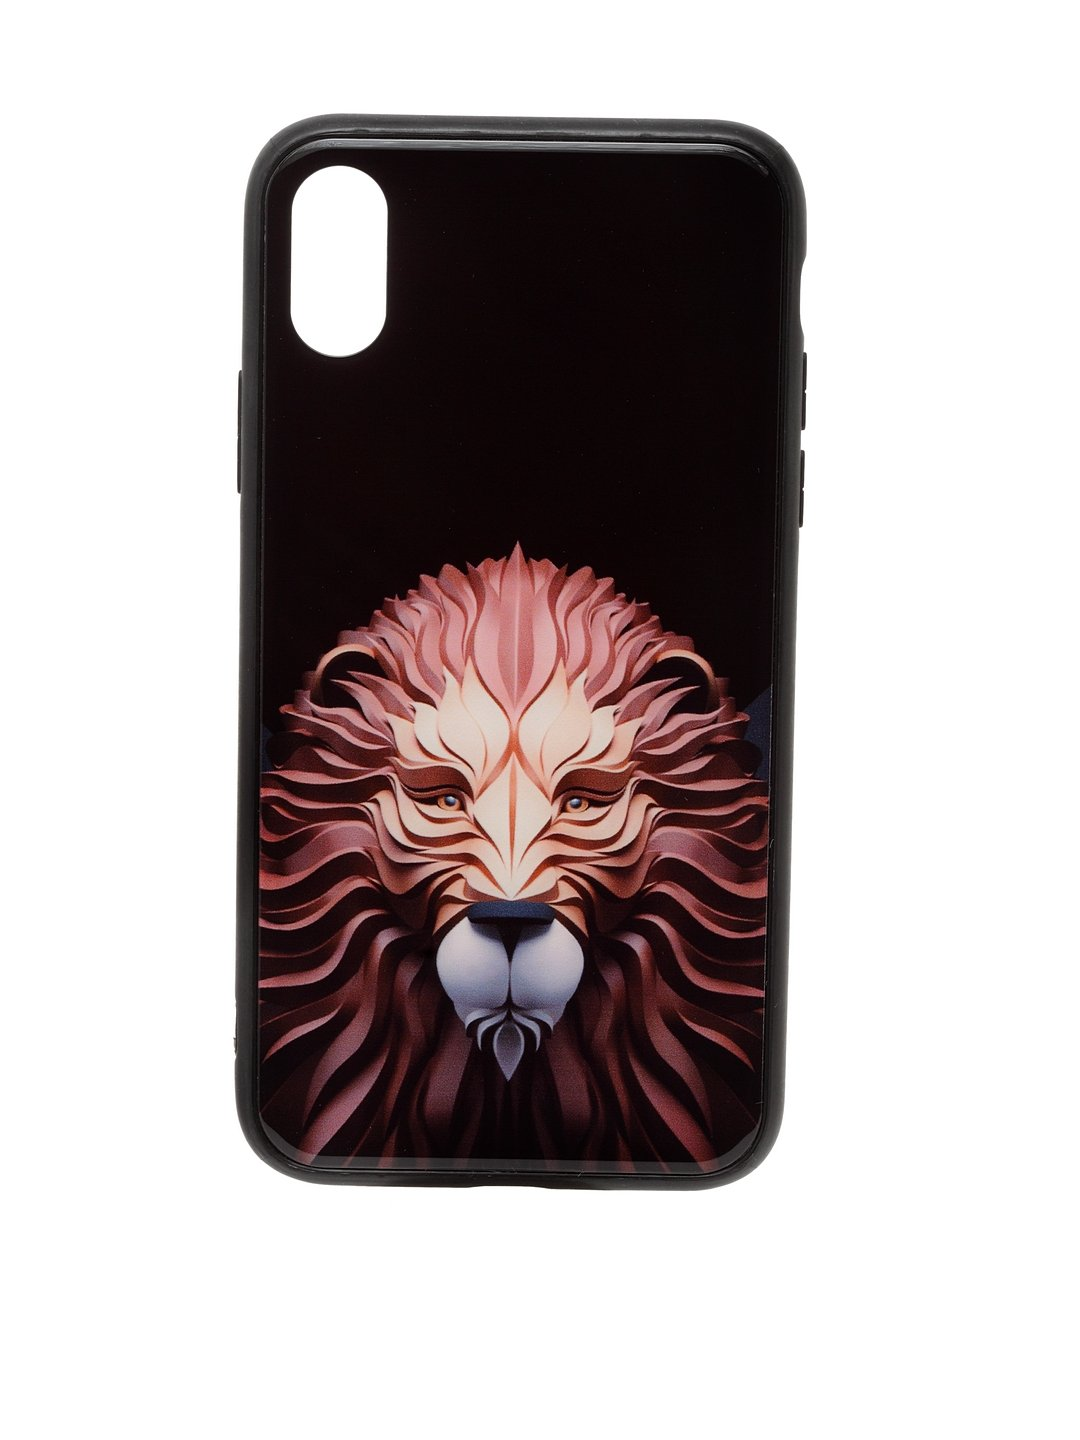 Lion High Quality iPhone Case For iPhone X